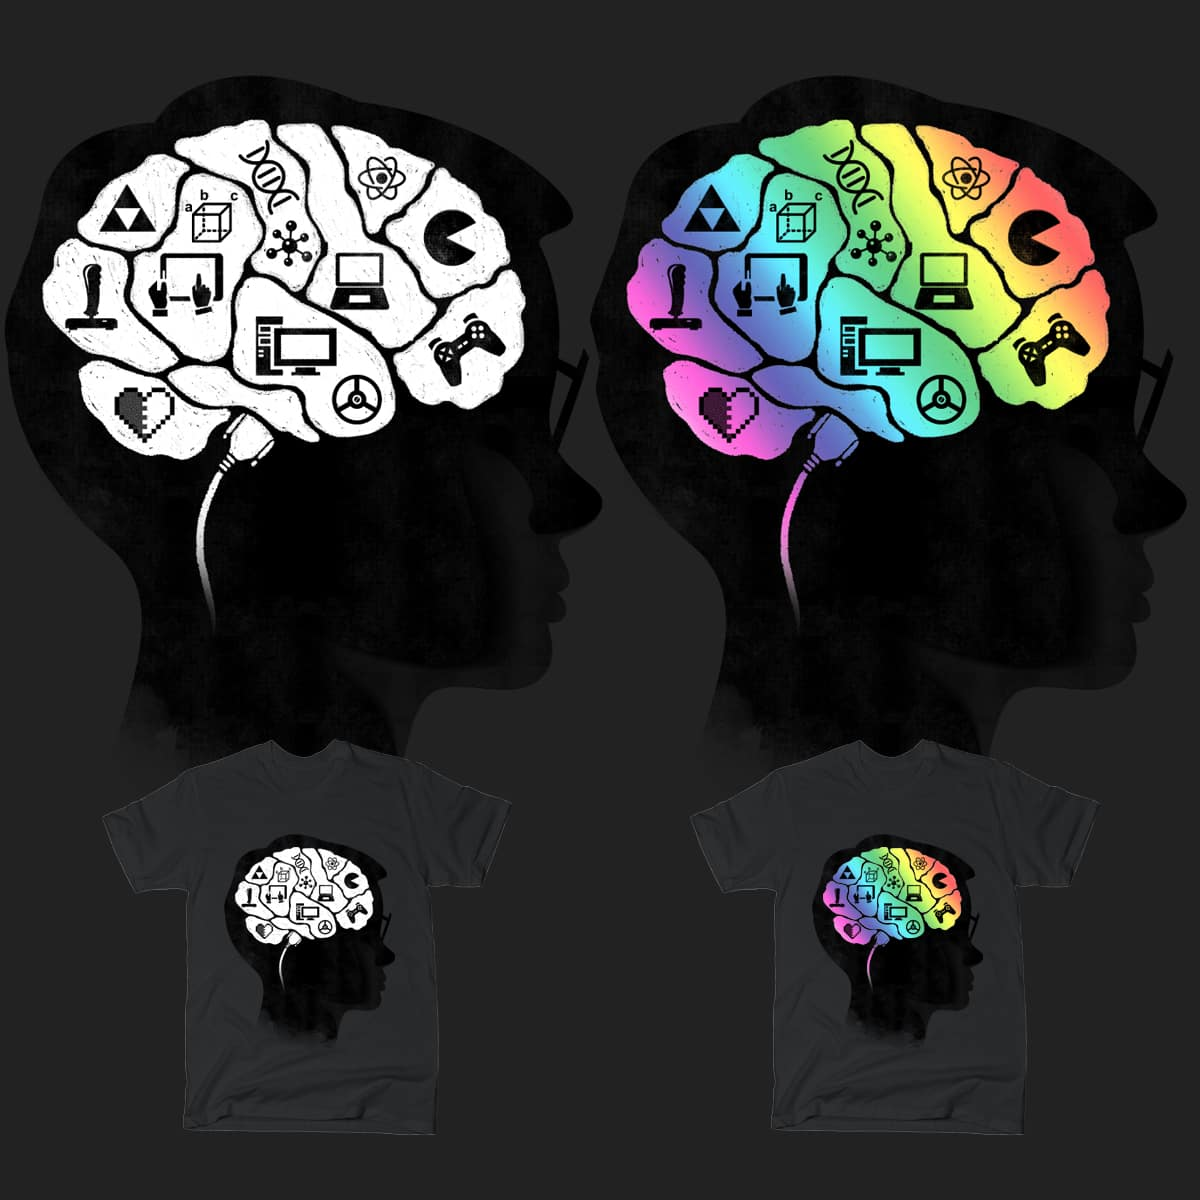 What's on your mind? by dandingeroz on Threadless